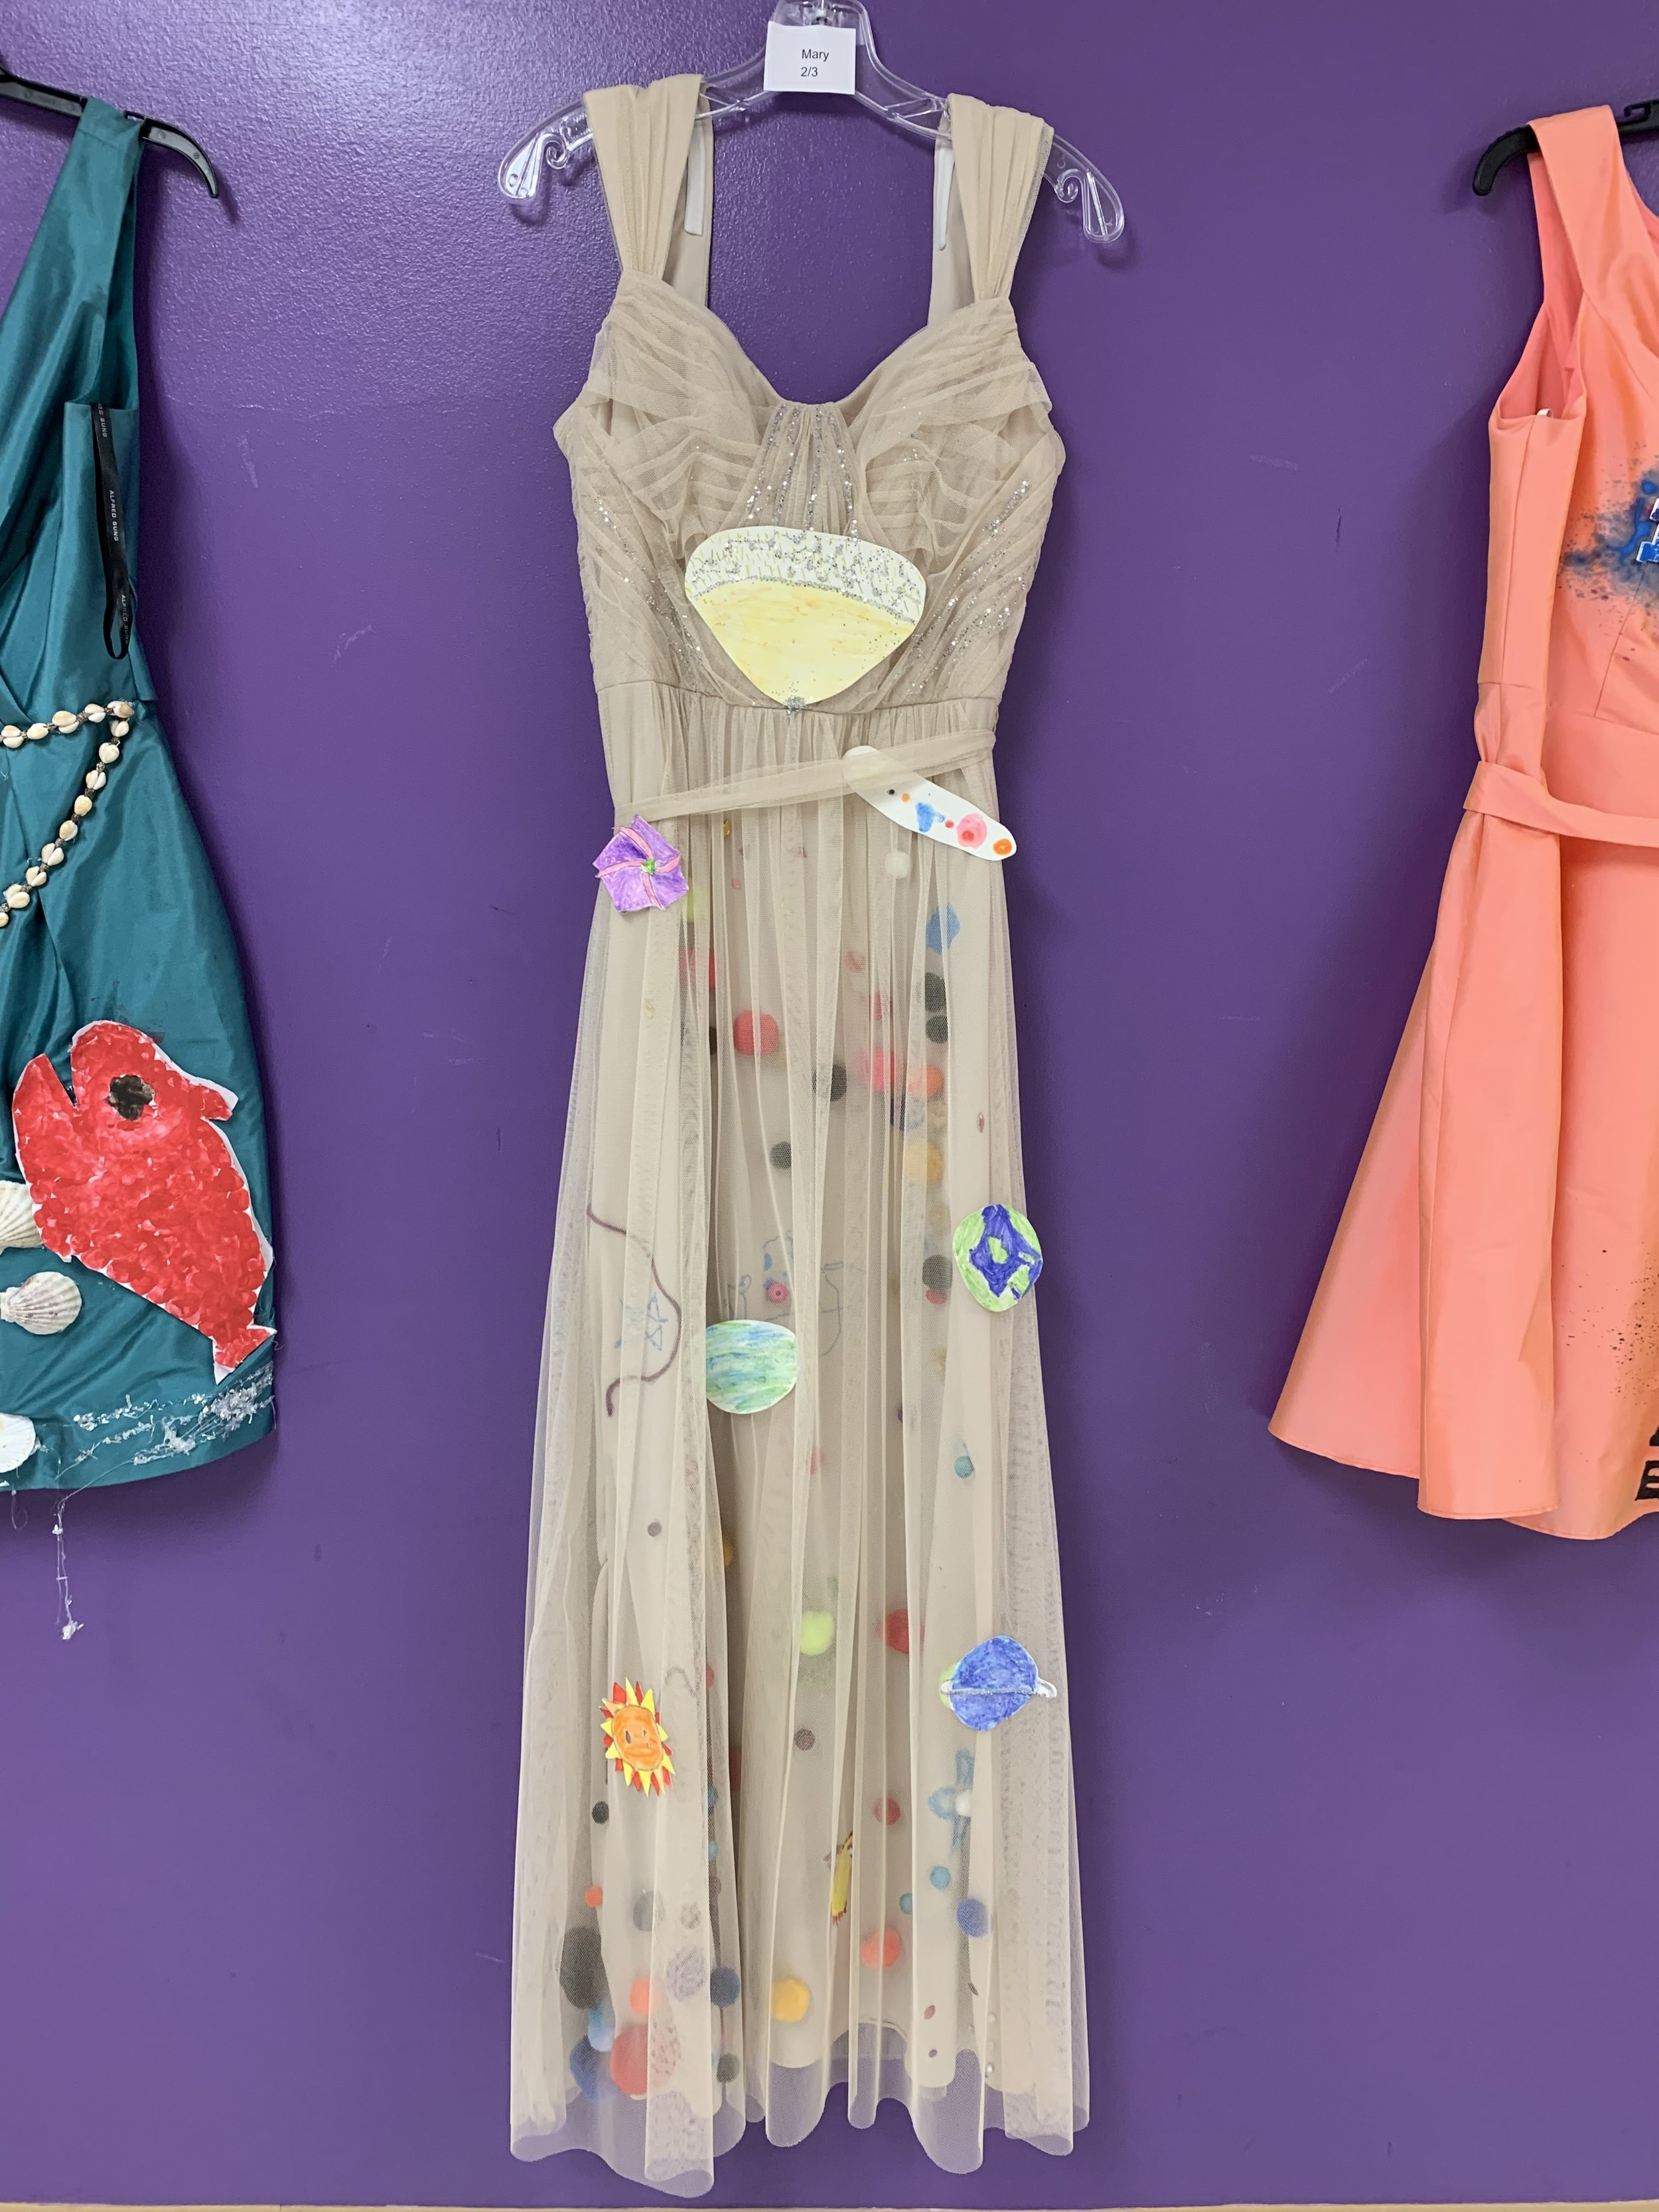 Our dresses on display as part of art unit on Ann Cole Lowe